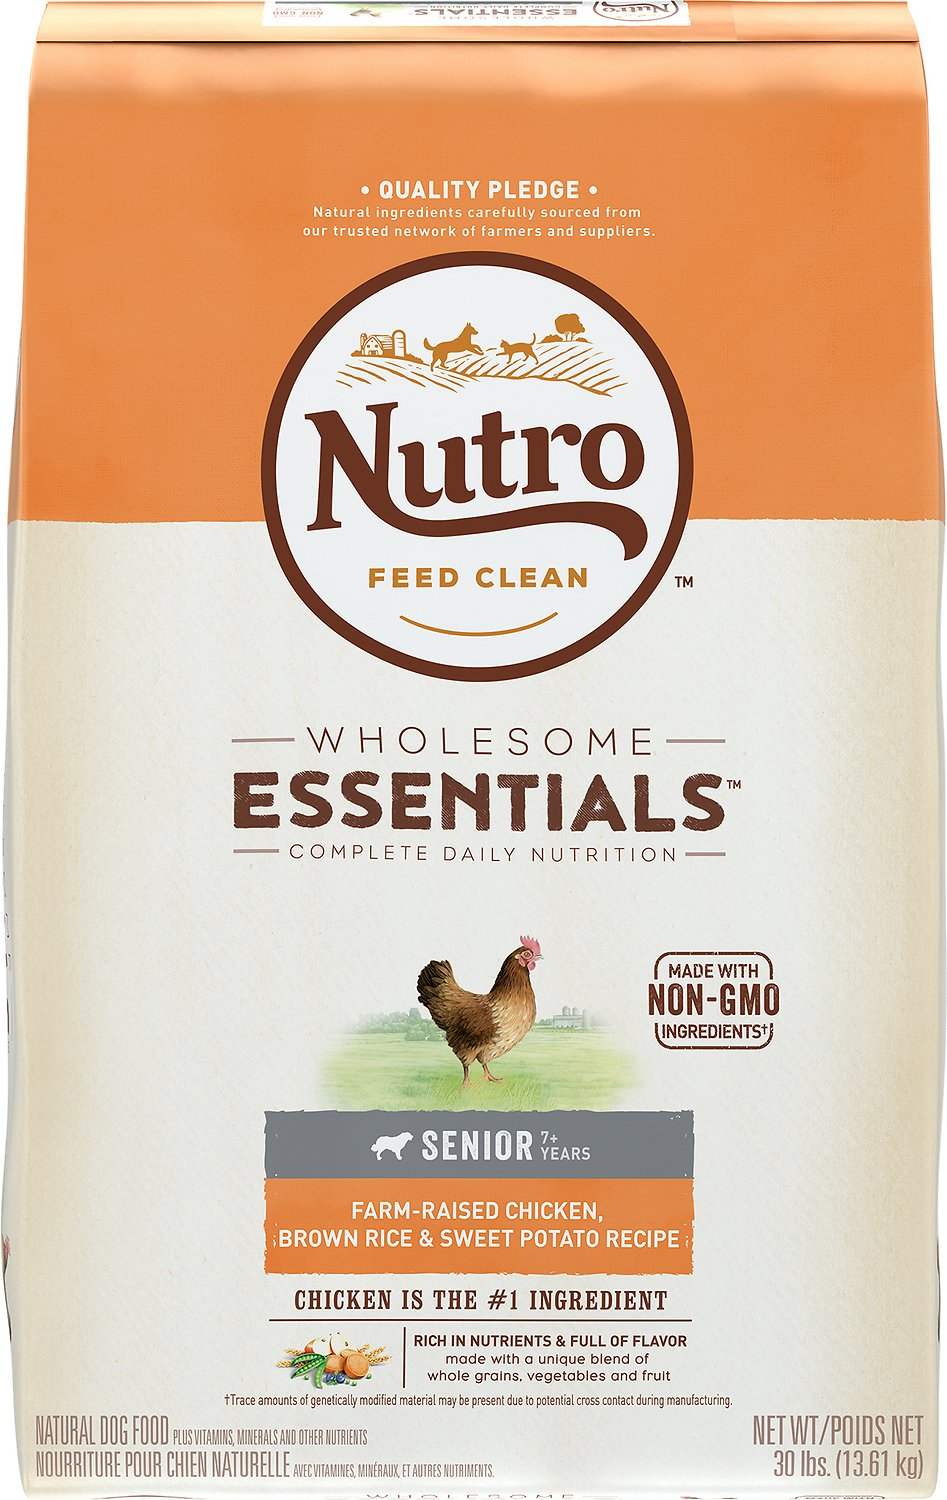 Nutro Wholesome Essentials Senior Farm Raised Chicken, Brown Rice & Sweet Potato Recipe Dry Dog Food Image